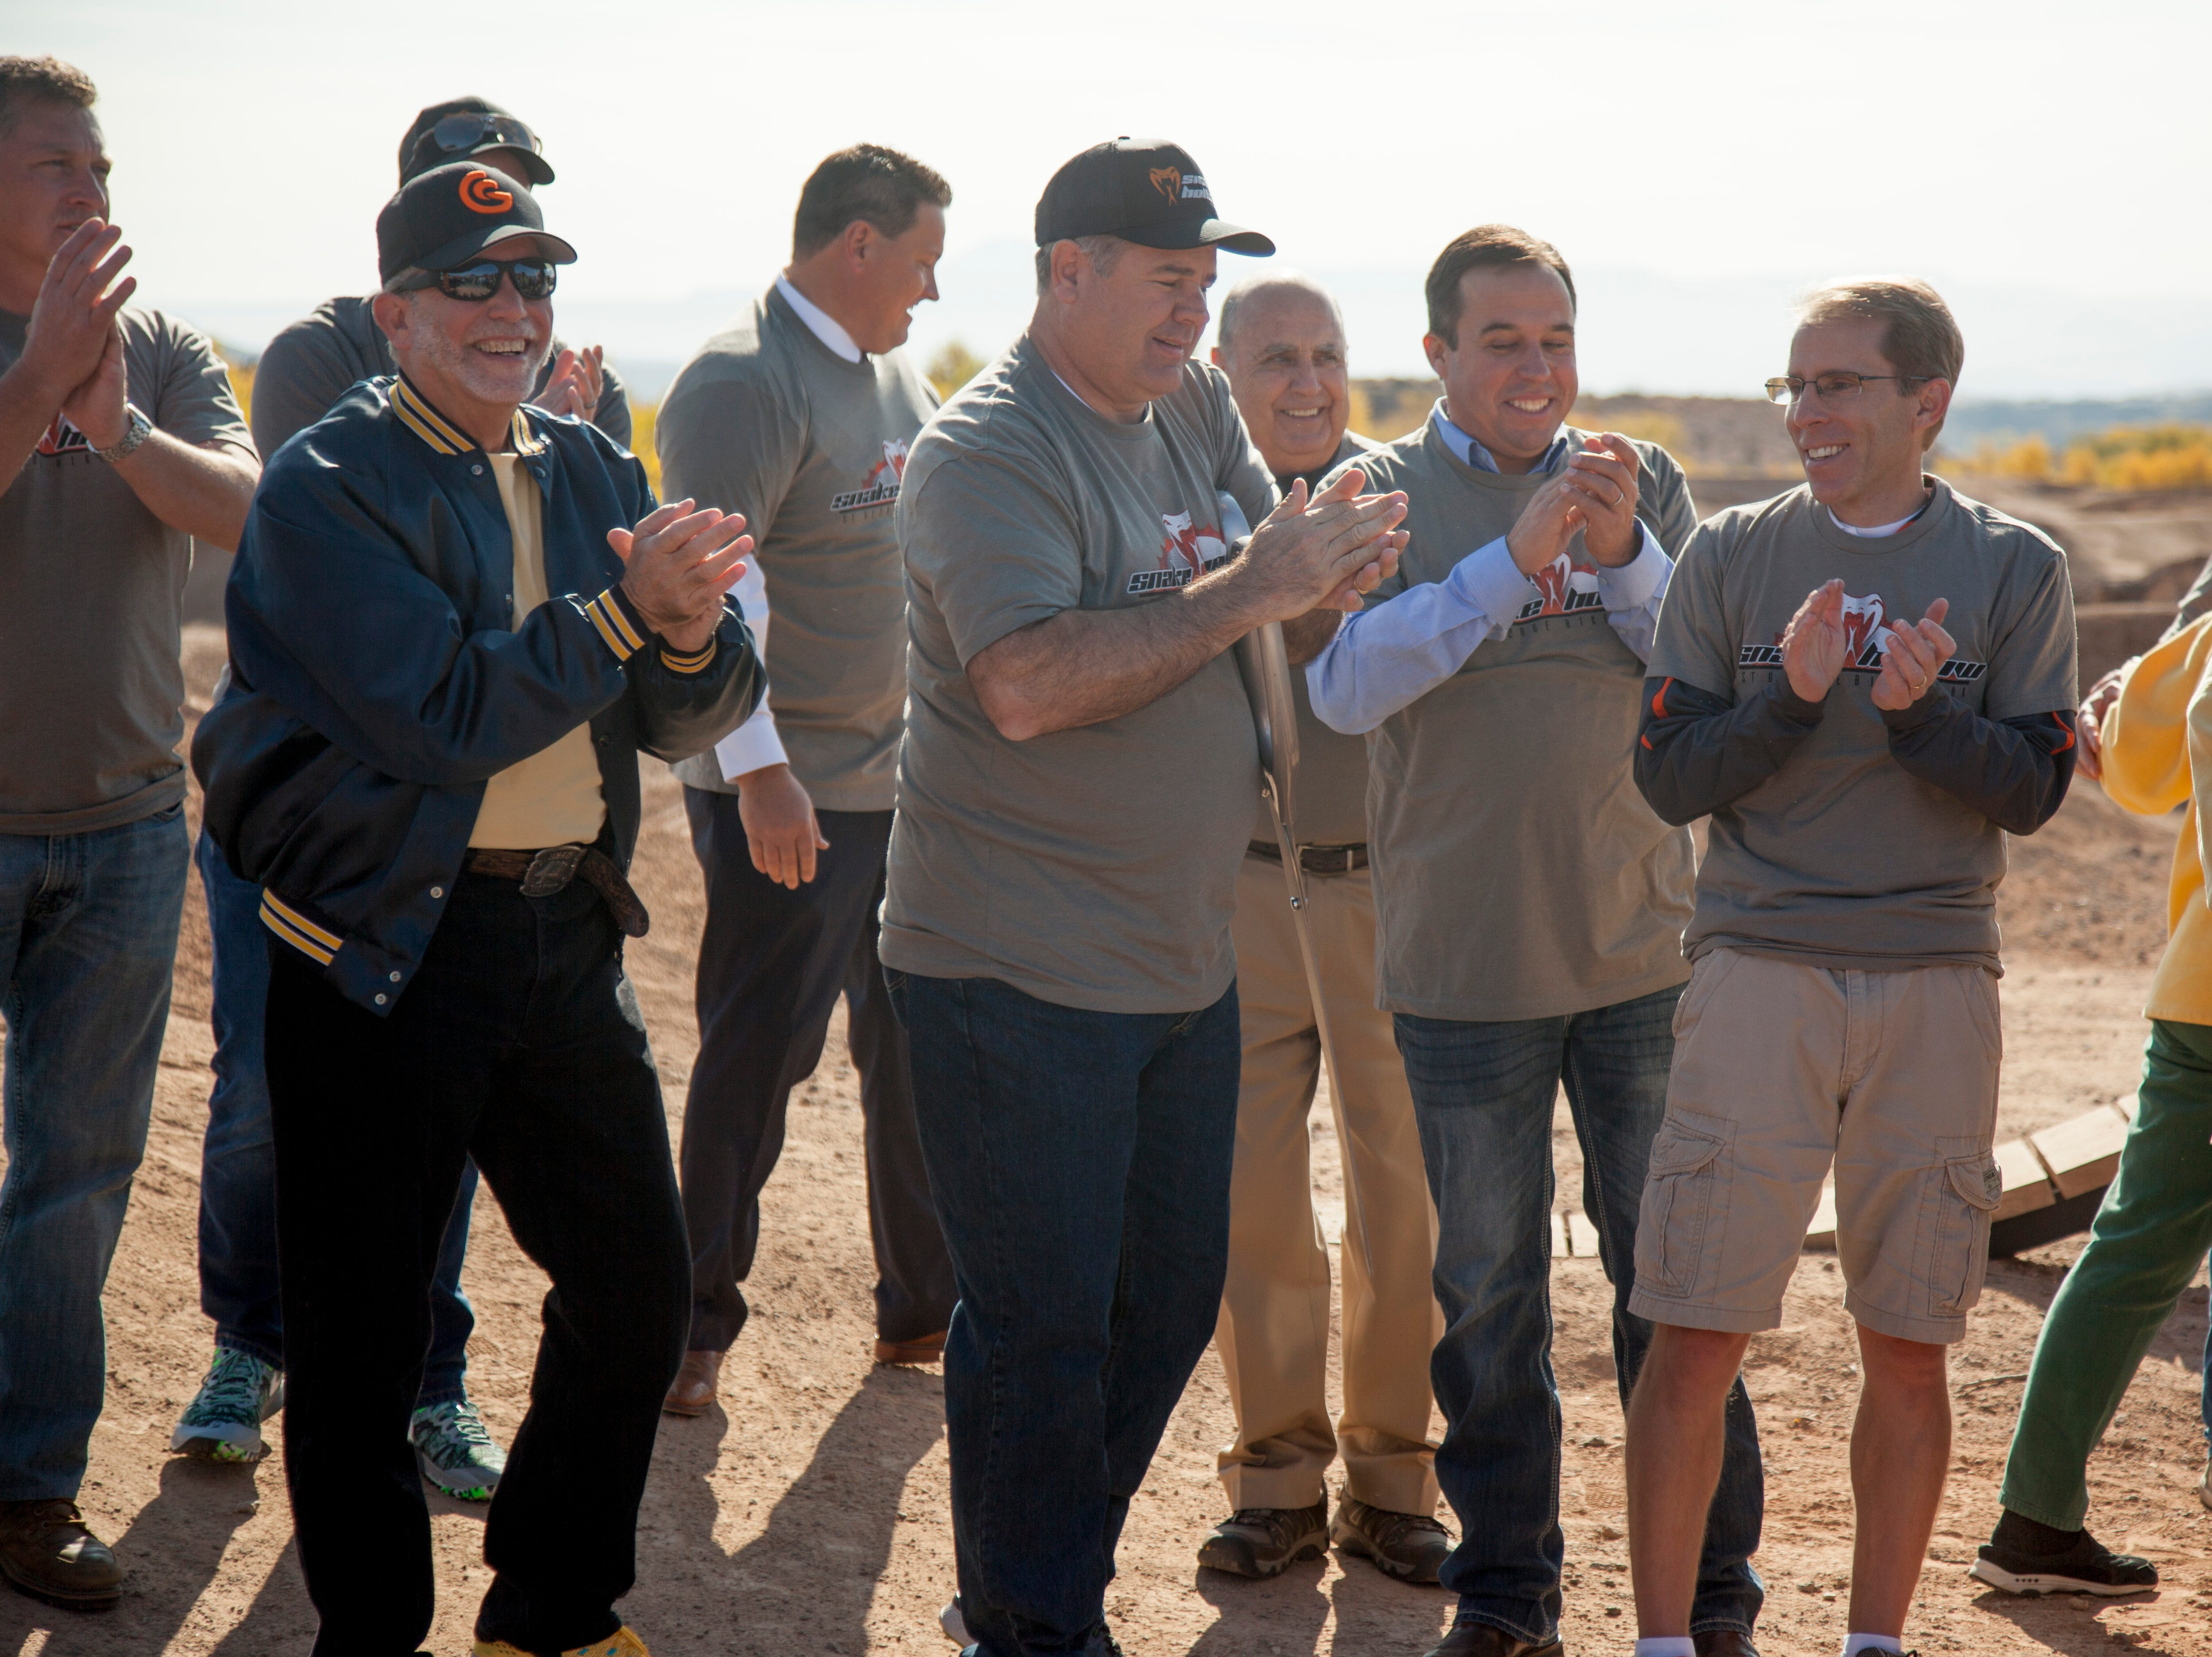 Key players in the project, including officials from Washington County and St. George, applaud after the ribbon cutting at Snake Hollow on Saturday, Nov. 17, 2018.